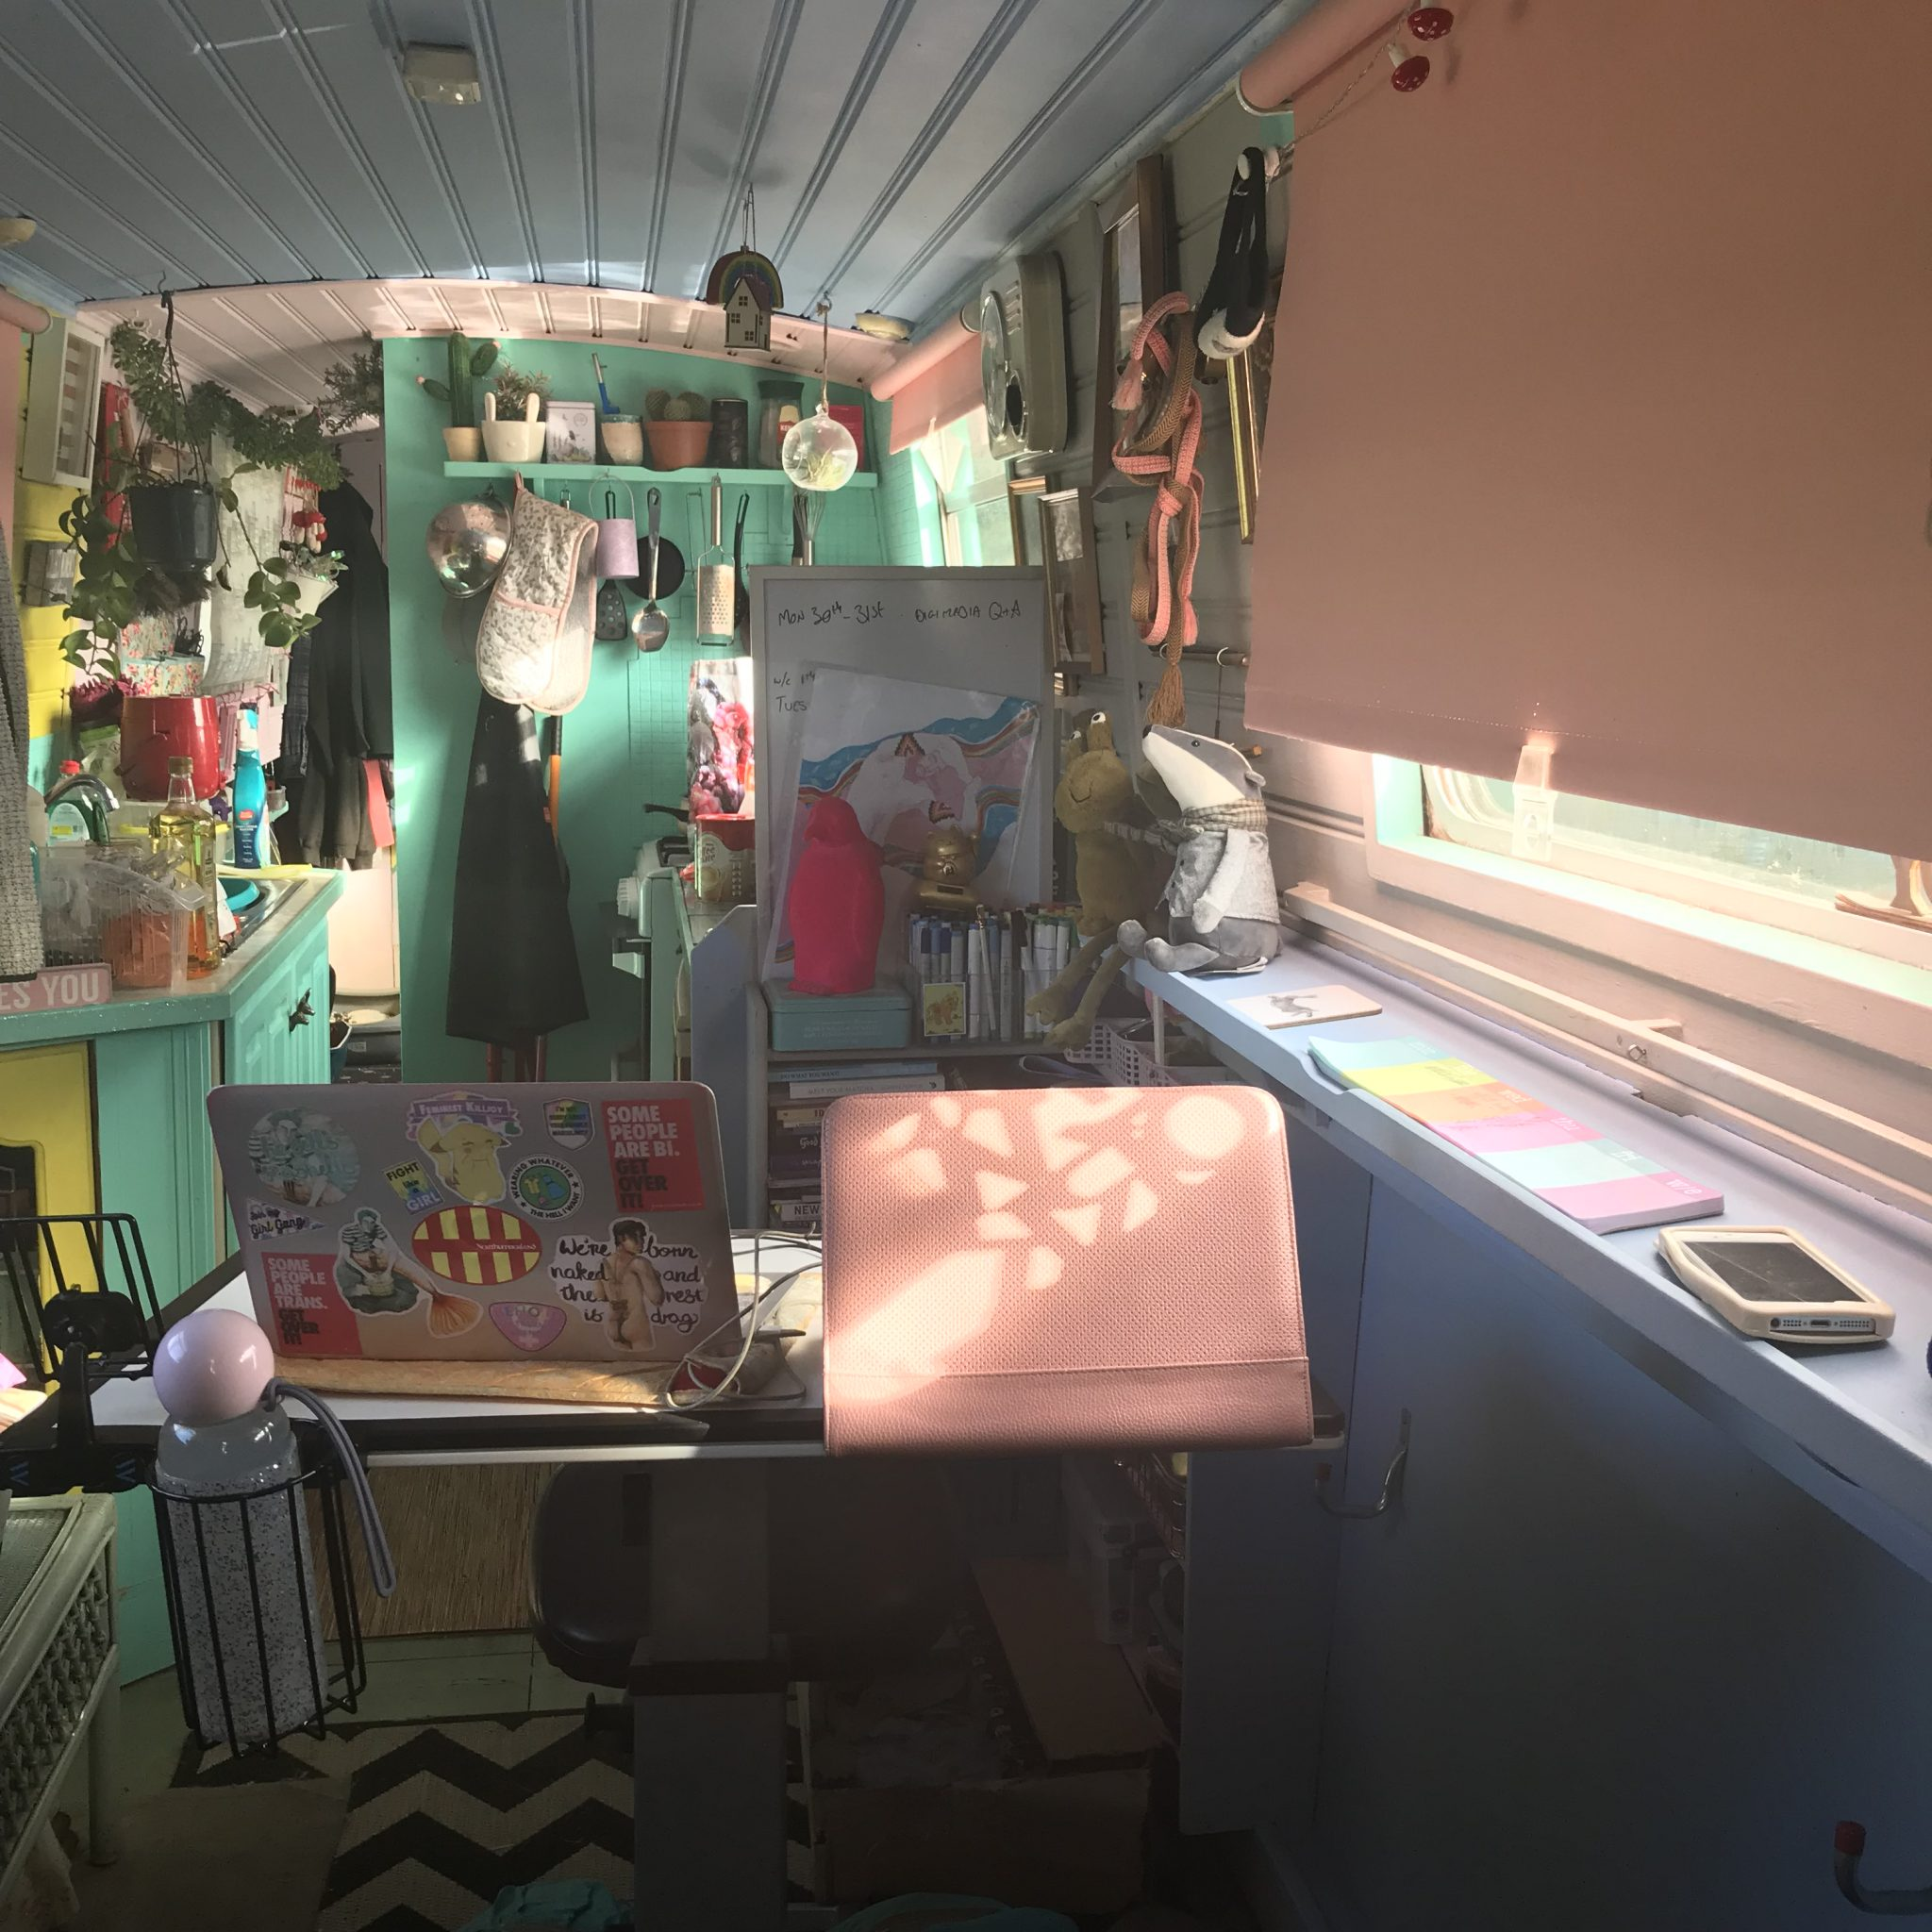 Photograph of the inside of Klara's house boat. We can see a window on the right with a pastel pink blind which is pulled down ¾ of the way. On the windowsill is pastel coloured post-it note pads and a mobile phone. In the middle of the image we see a desk with a laptop which is covered in stickers, a water bottle and other art equipment. Behind this is a green kitchen with utensils and plants.